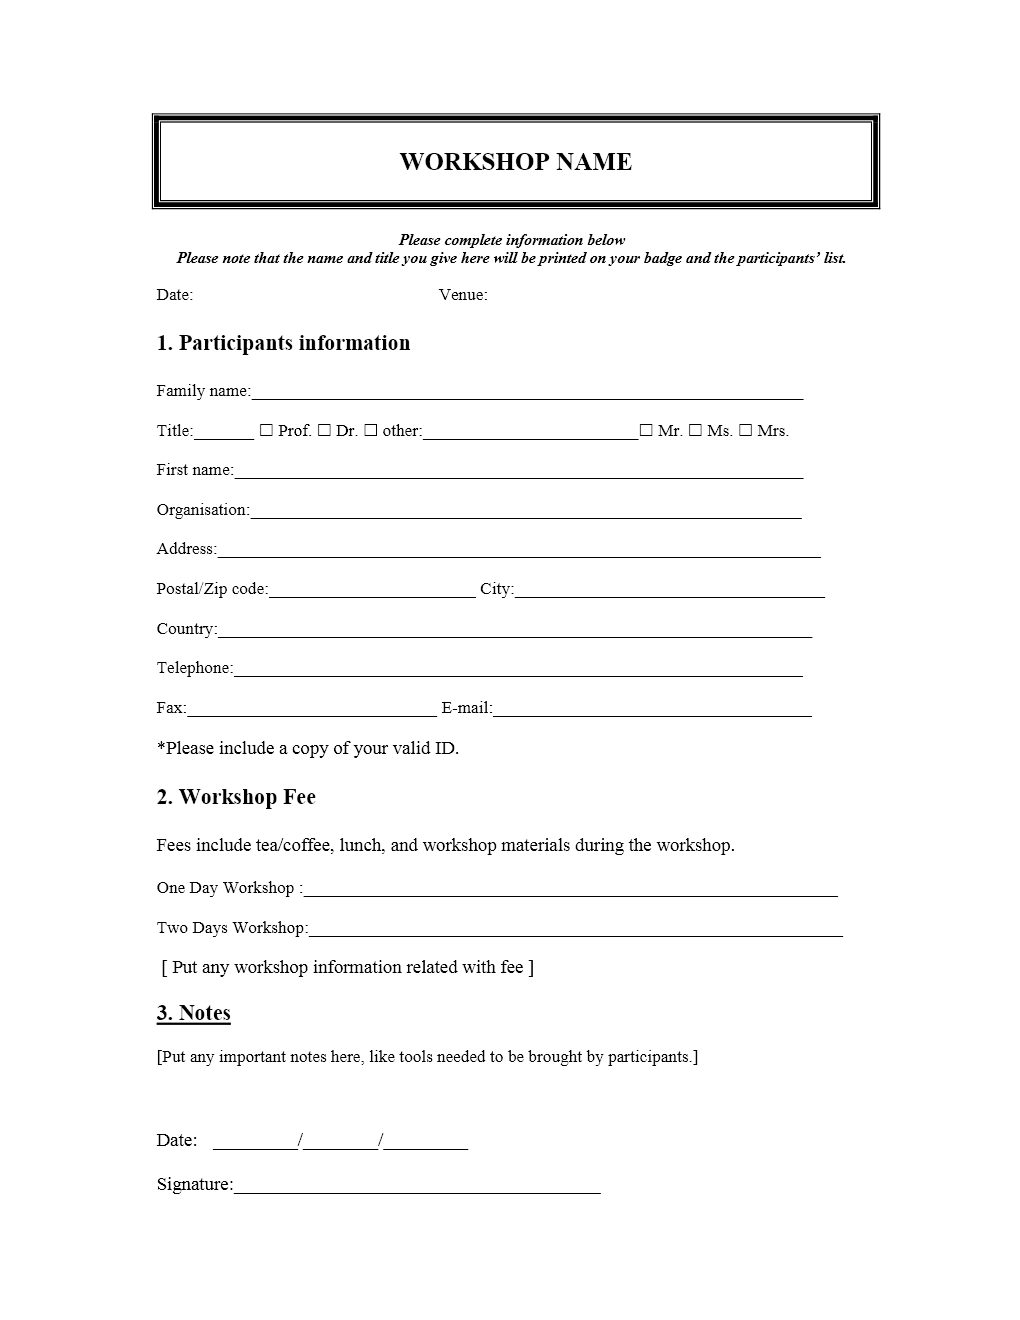 event registration form template word   Boat.jeremyeaton.co